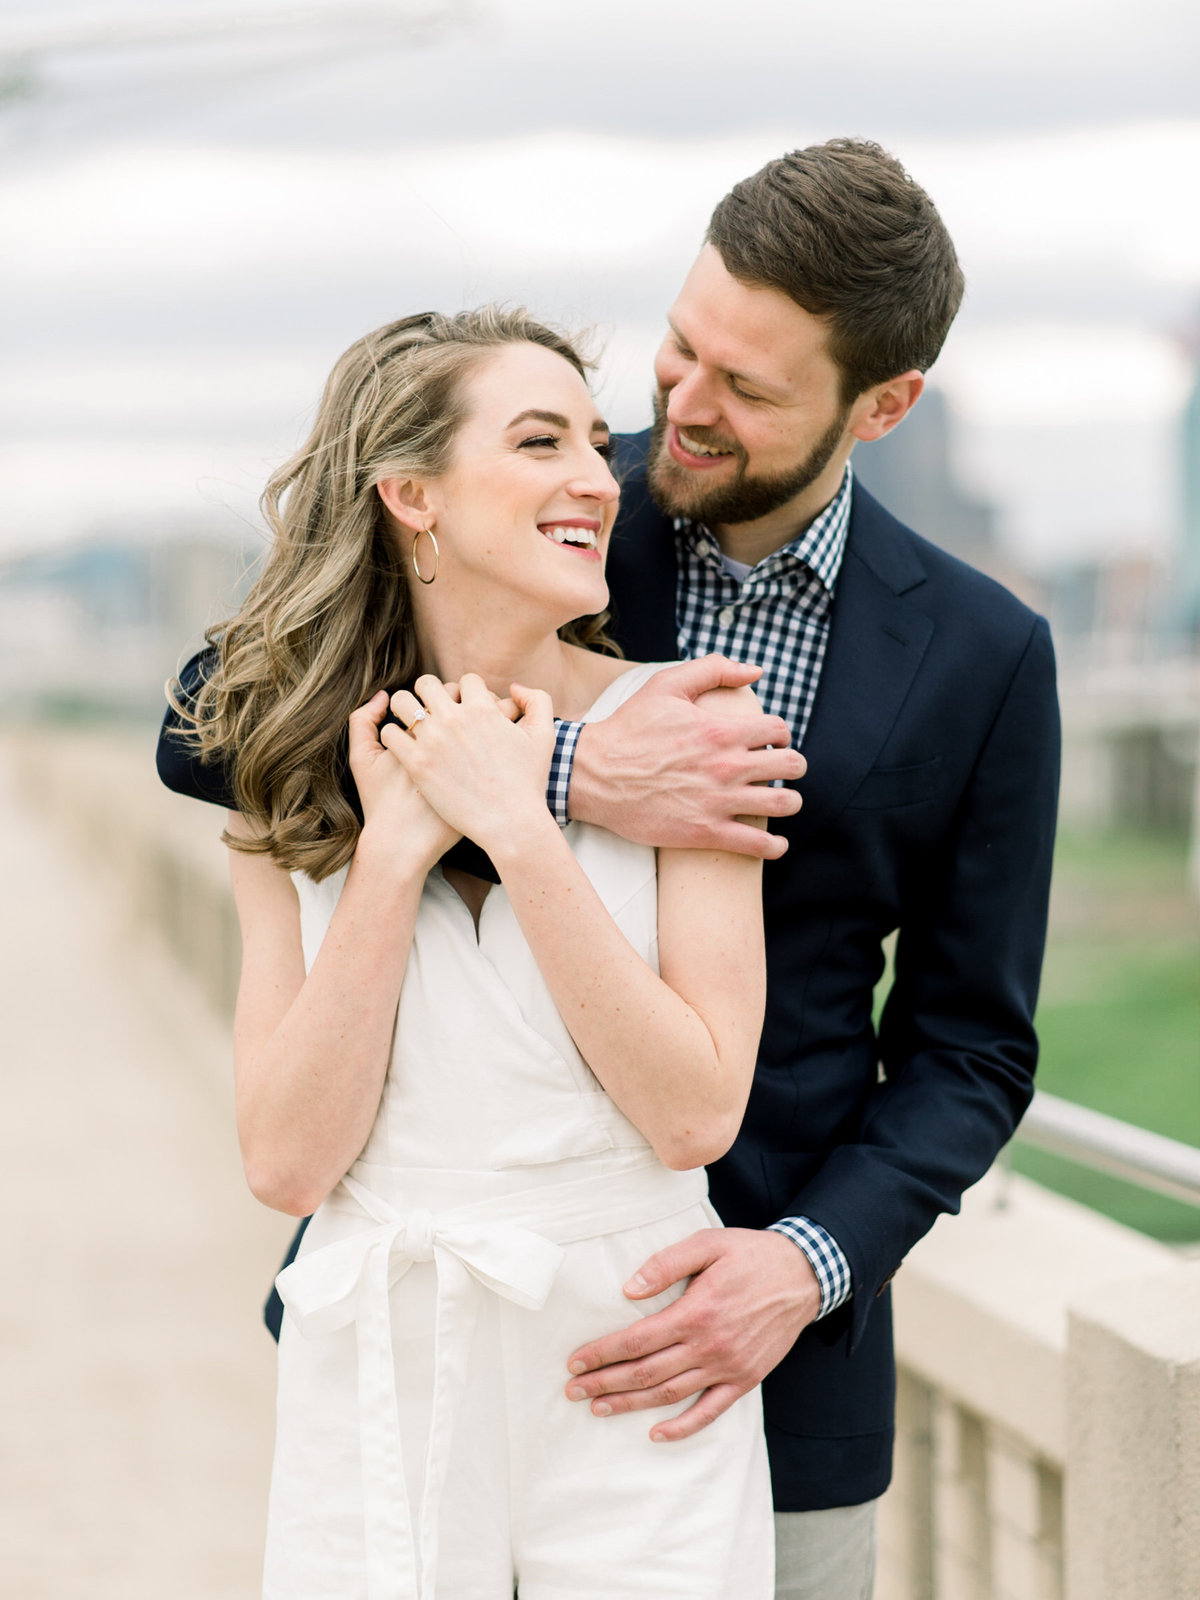 Courtney Hanson Photography - Dallas Spring Engagement Photos at Dallas Arboretum-2907